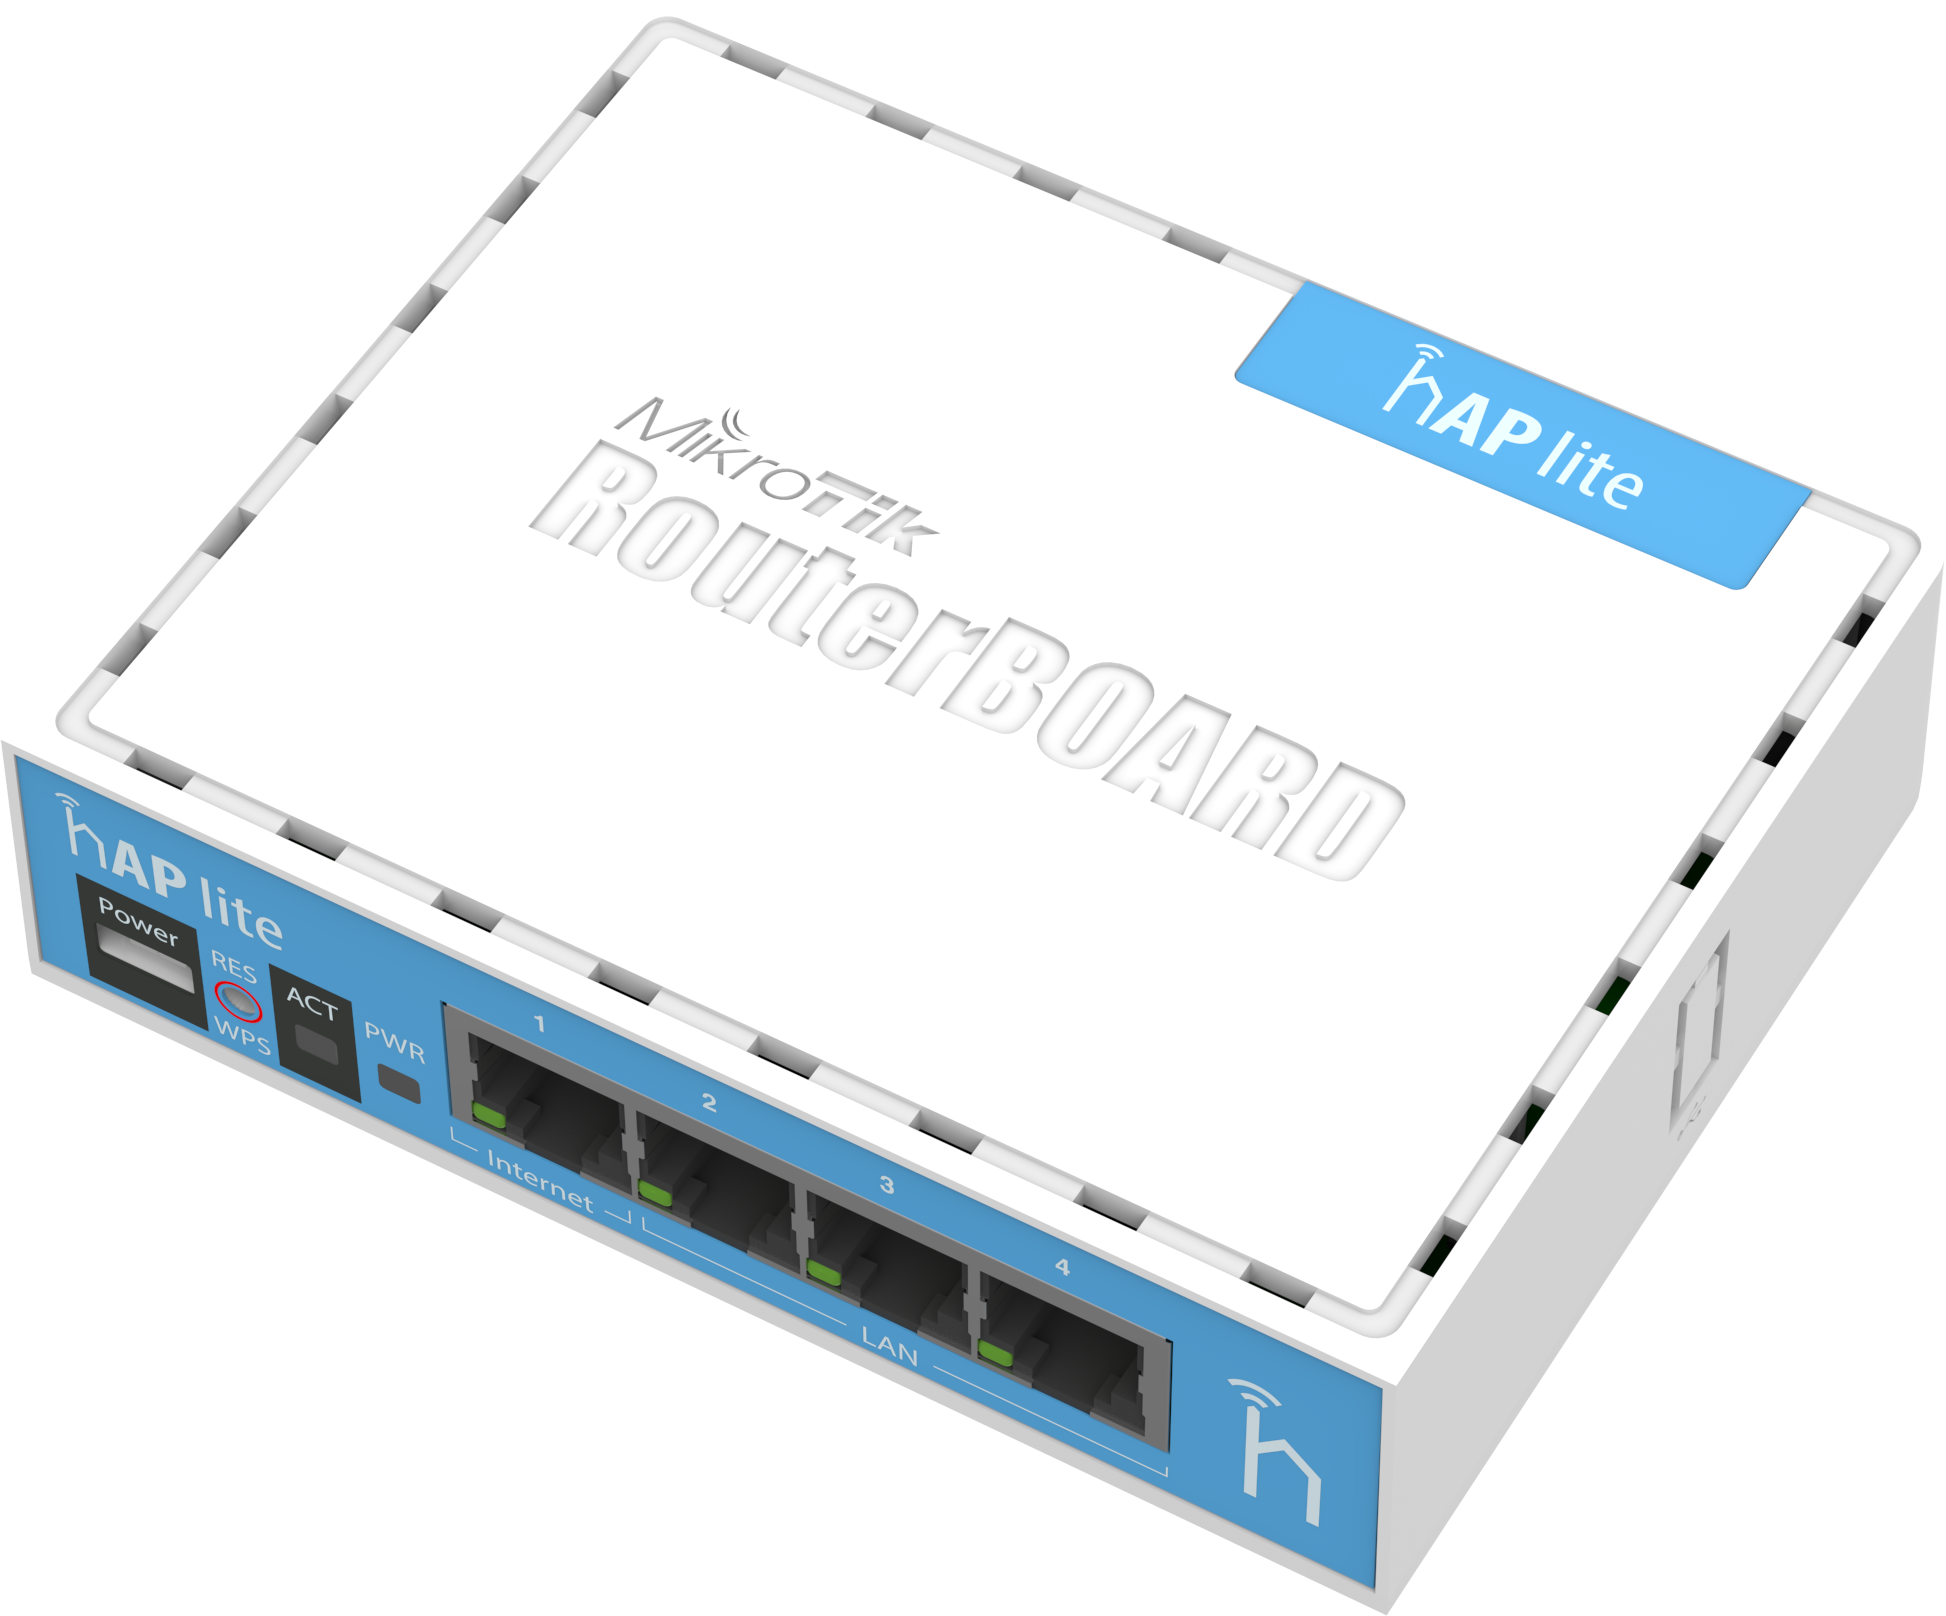 MikroTik Routers and Wireless - Products: hAP lite